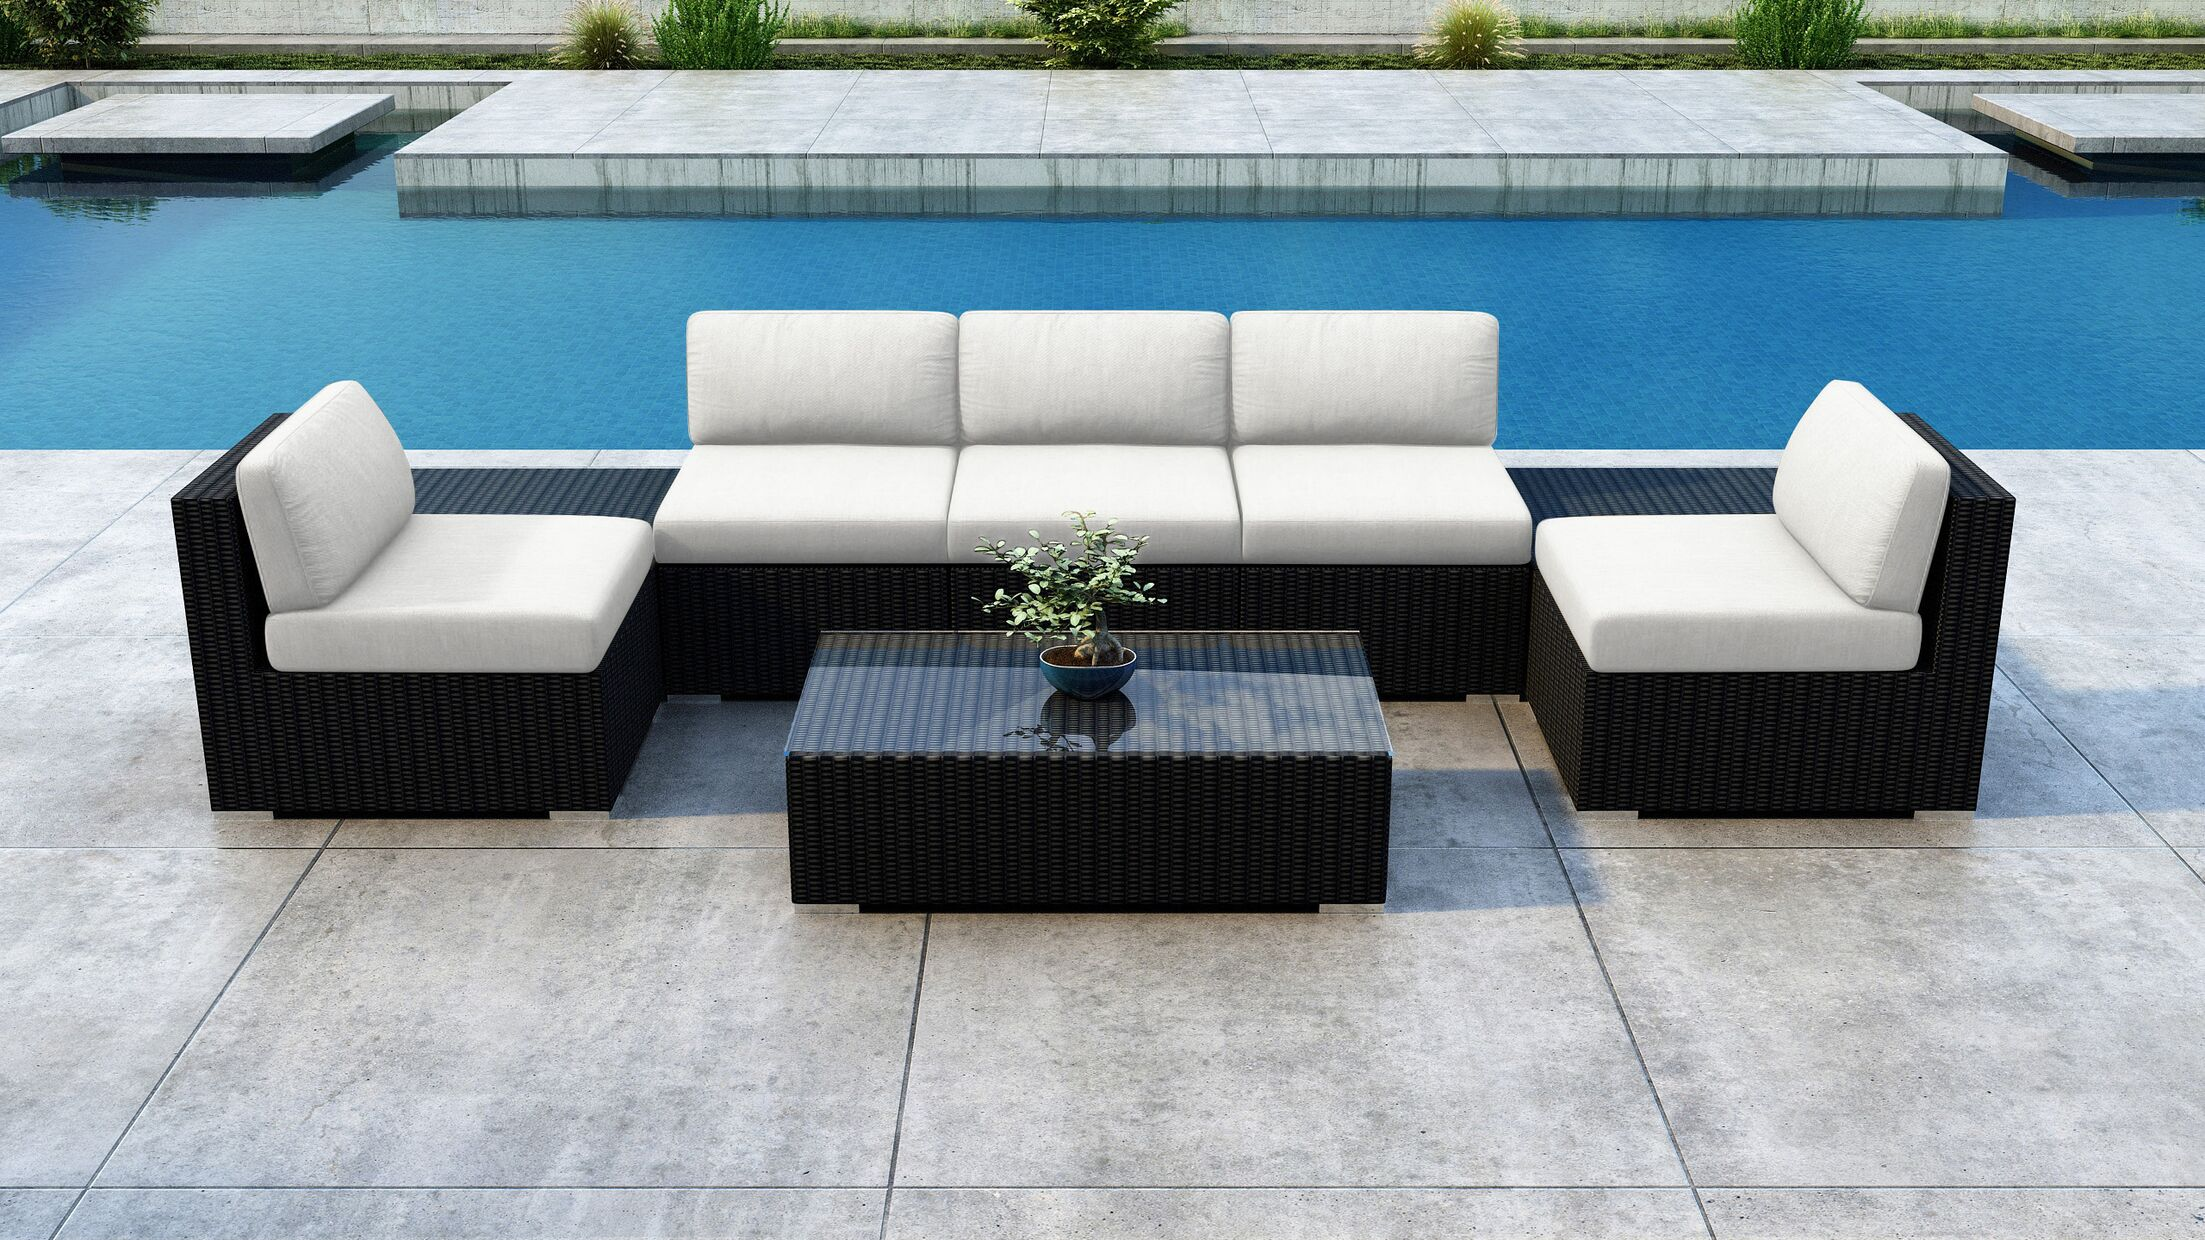 Glendale 8 Piece Sectional Set with Sunbrella Cushion Cushion Color: Canvas Natural